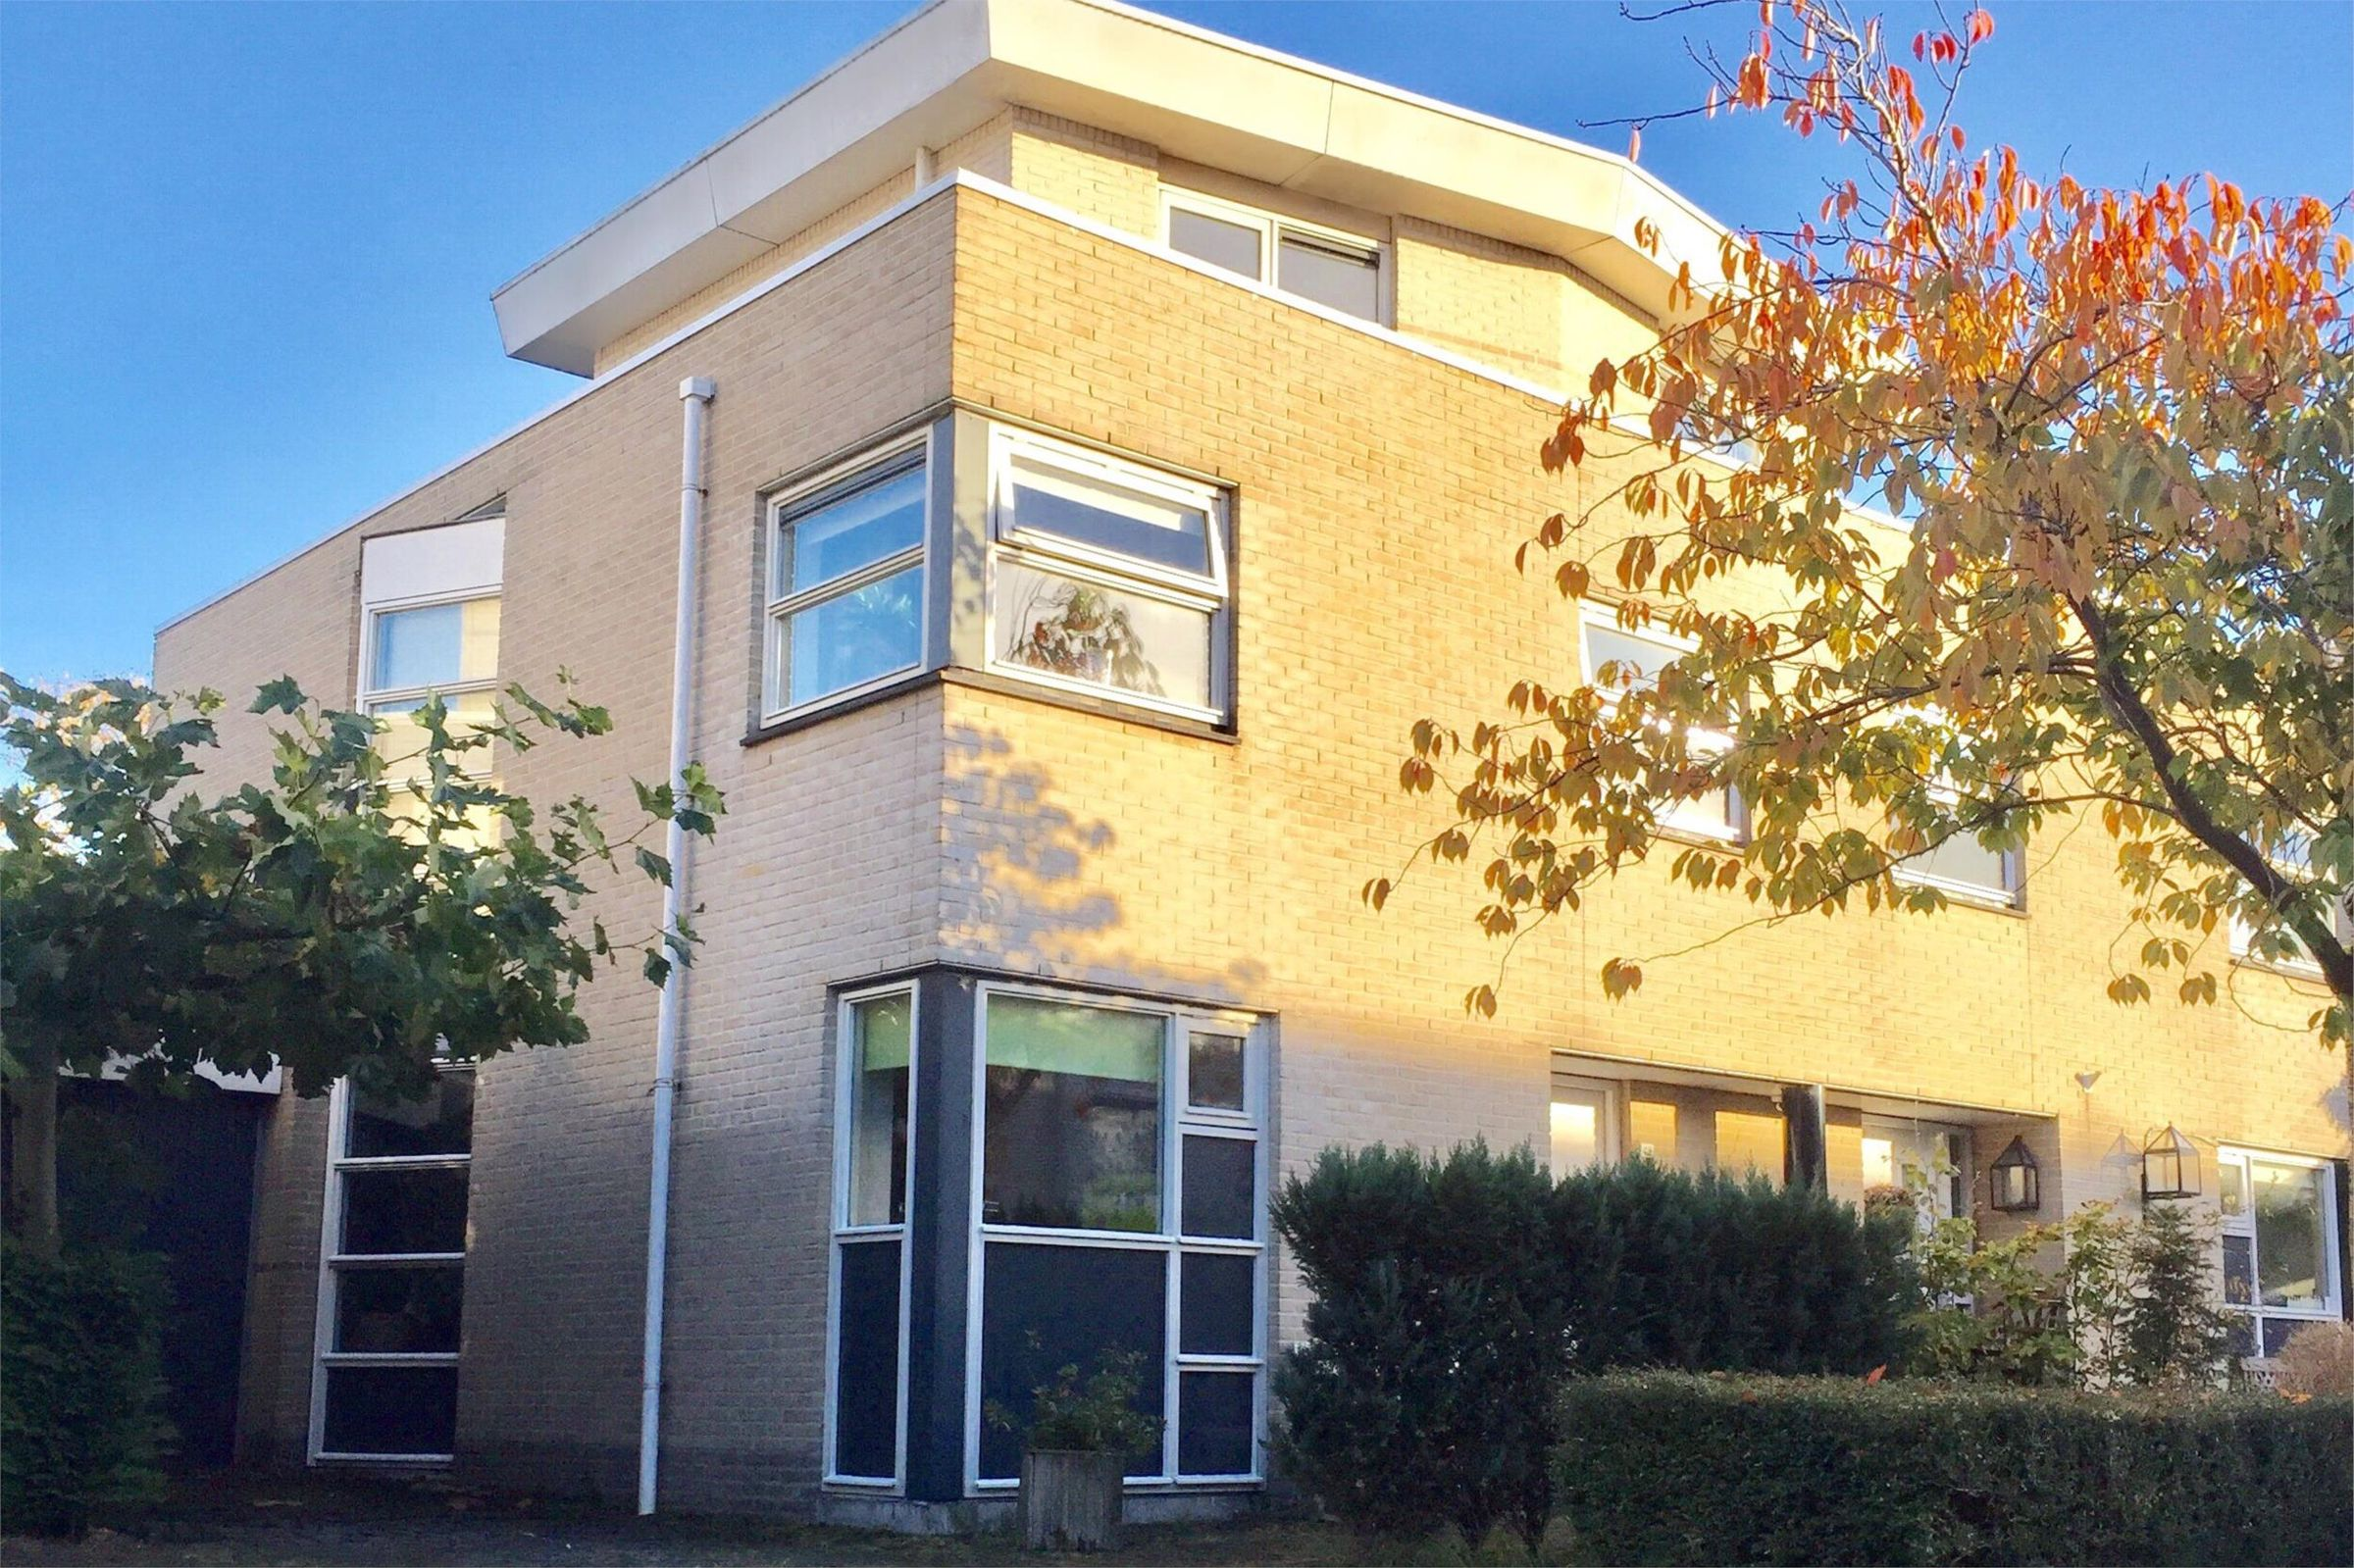 Peggy Ashcroftstraat 48, Almere